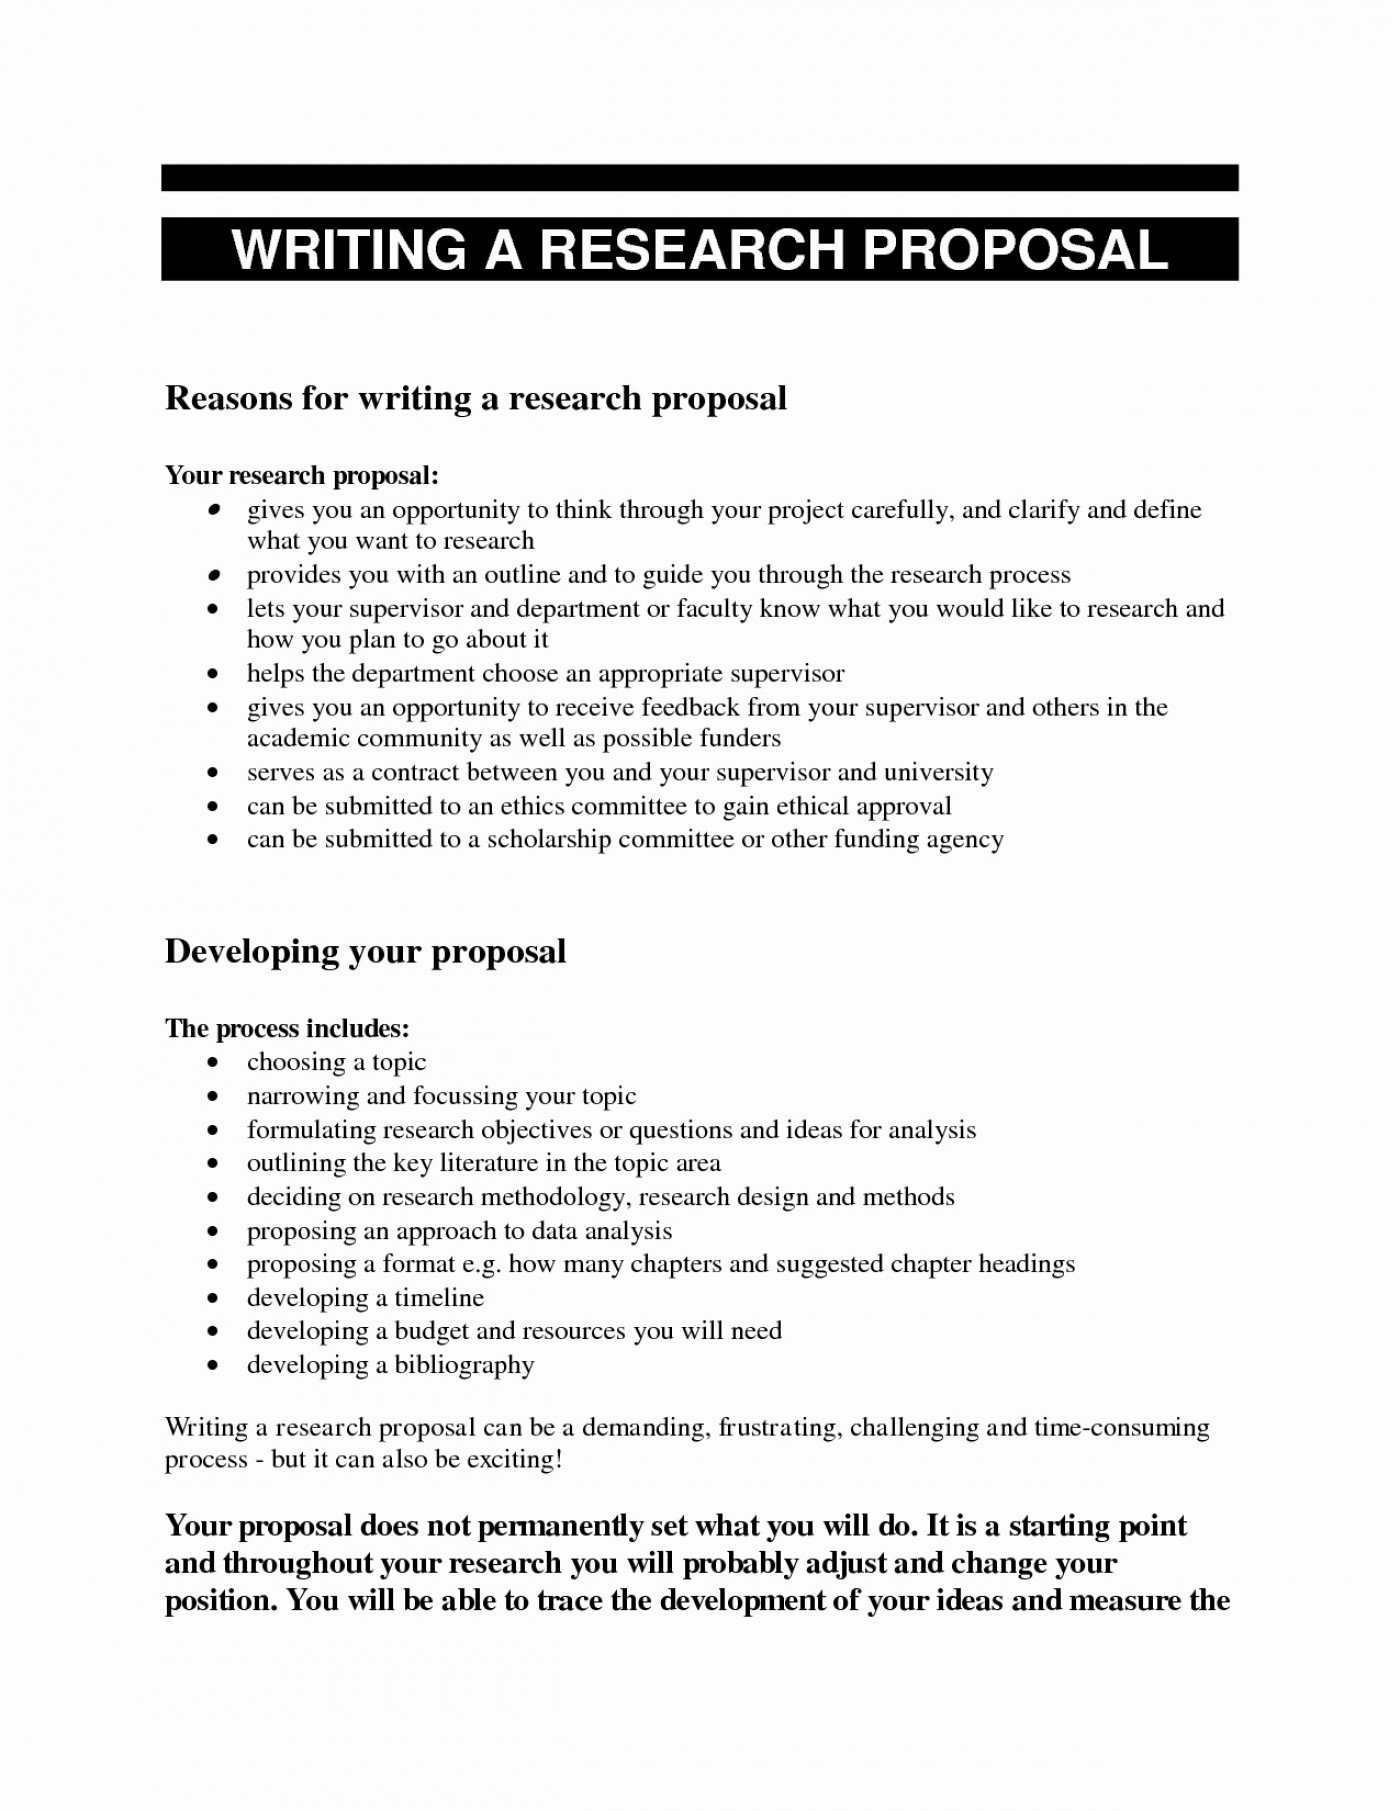 010 Proposal Template For Research Paper Essay Topics College Students Sample Beautiful A Example Of Writing 1400